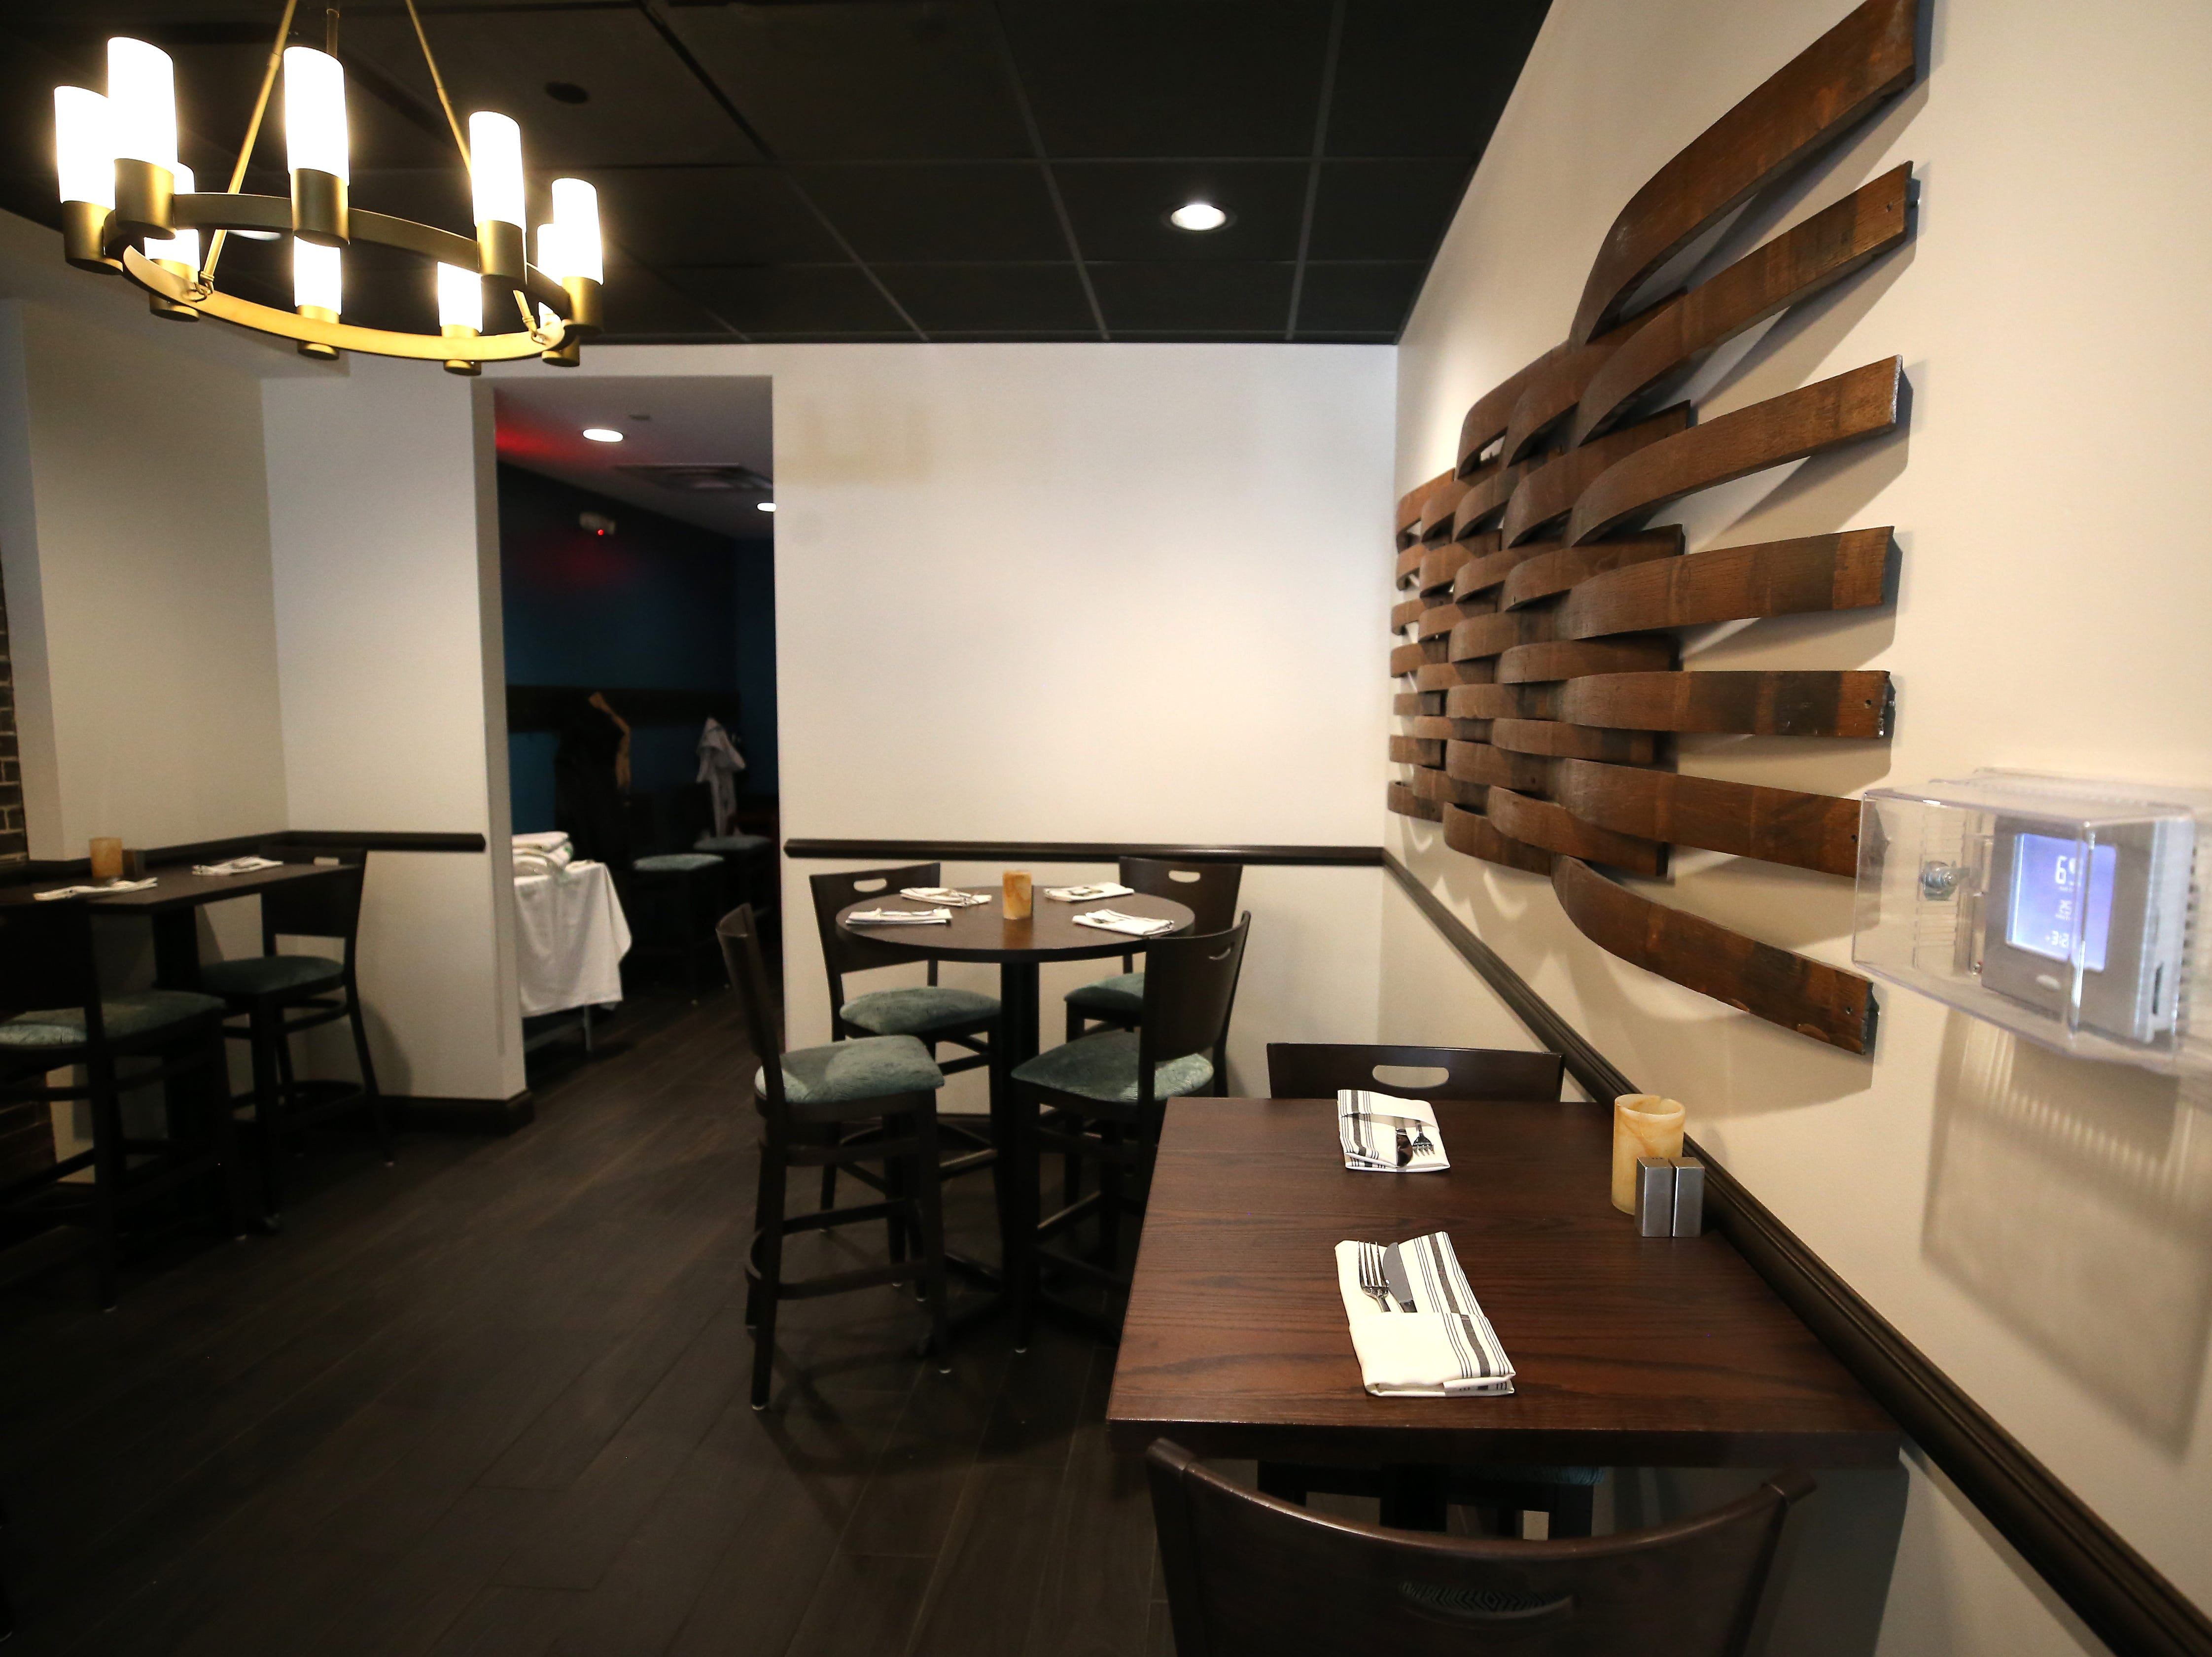 Seating in the bar area, pictured, Friday, Jan. 25, 2019, at Tano Bistro restaurant in Loveland, Ohio.